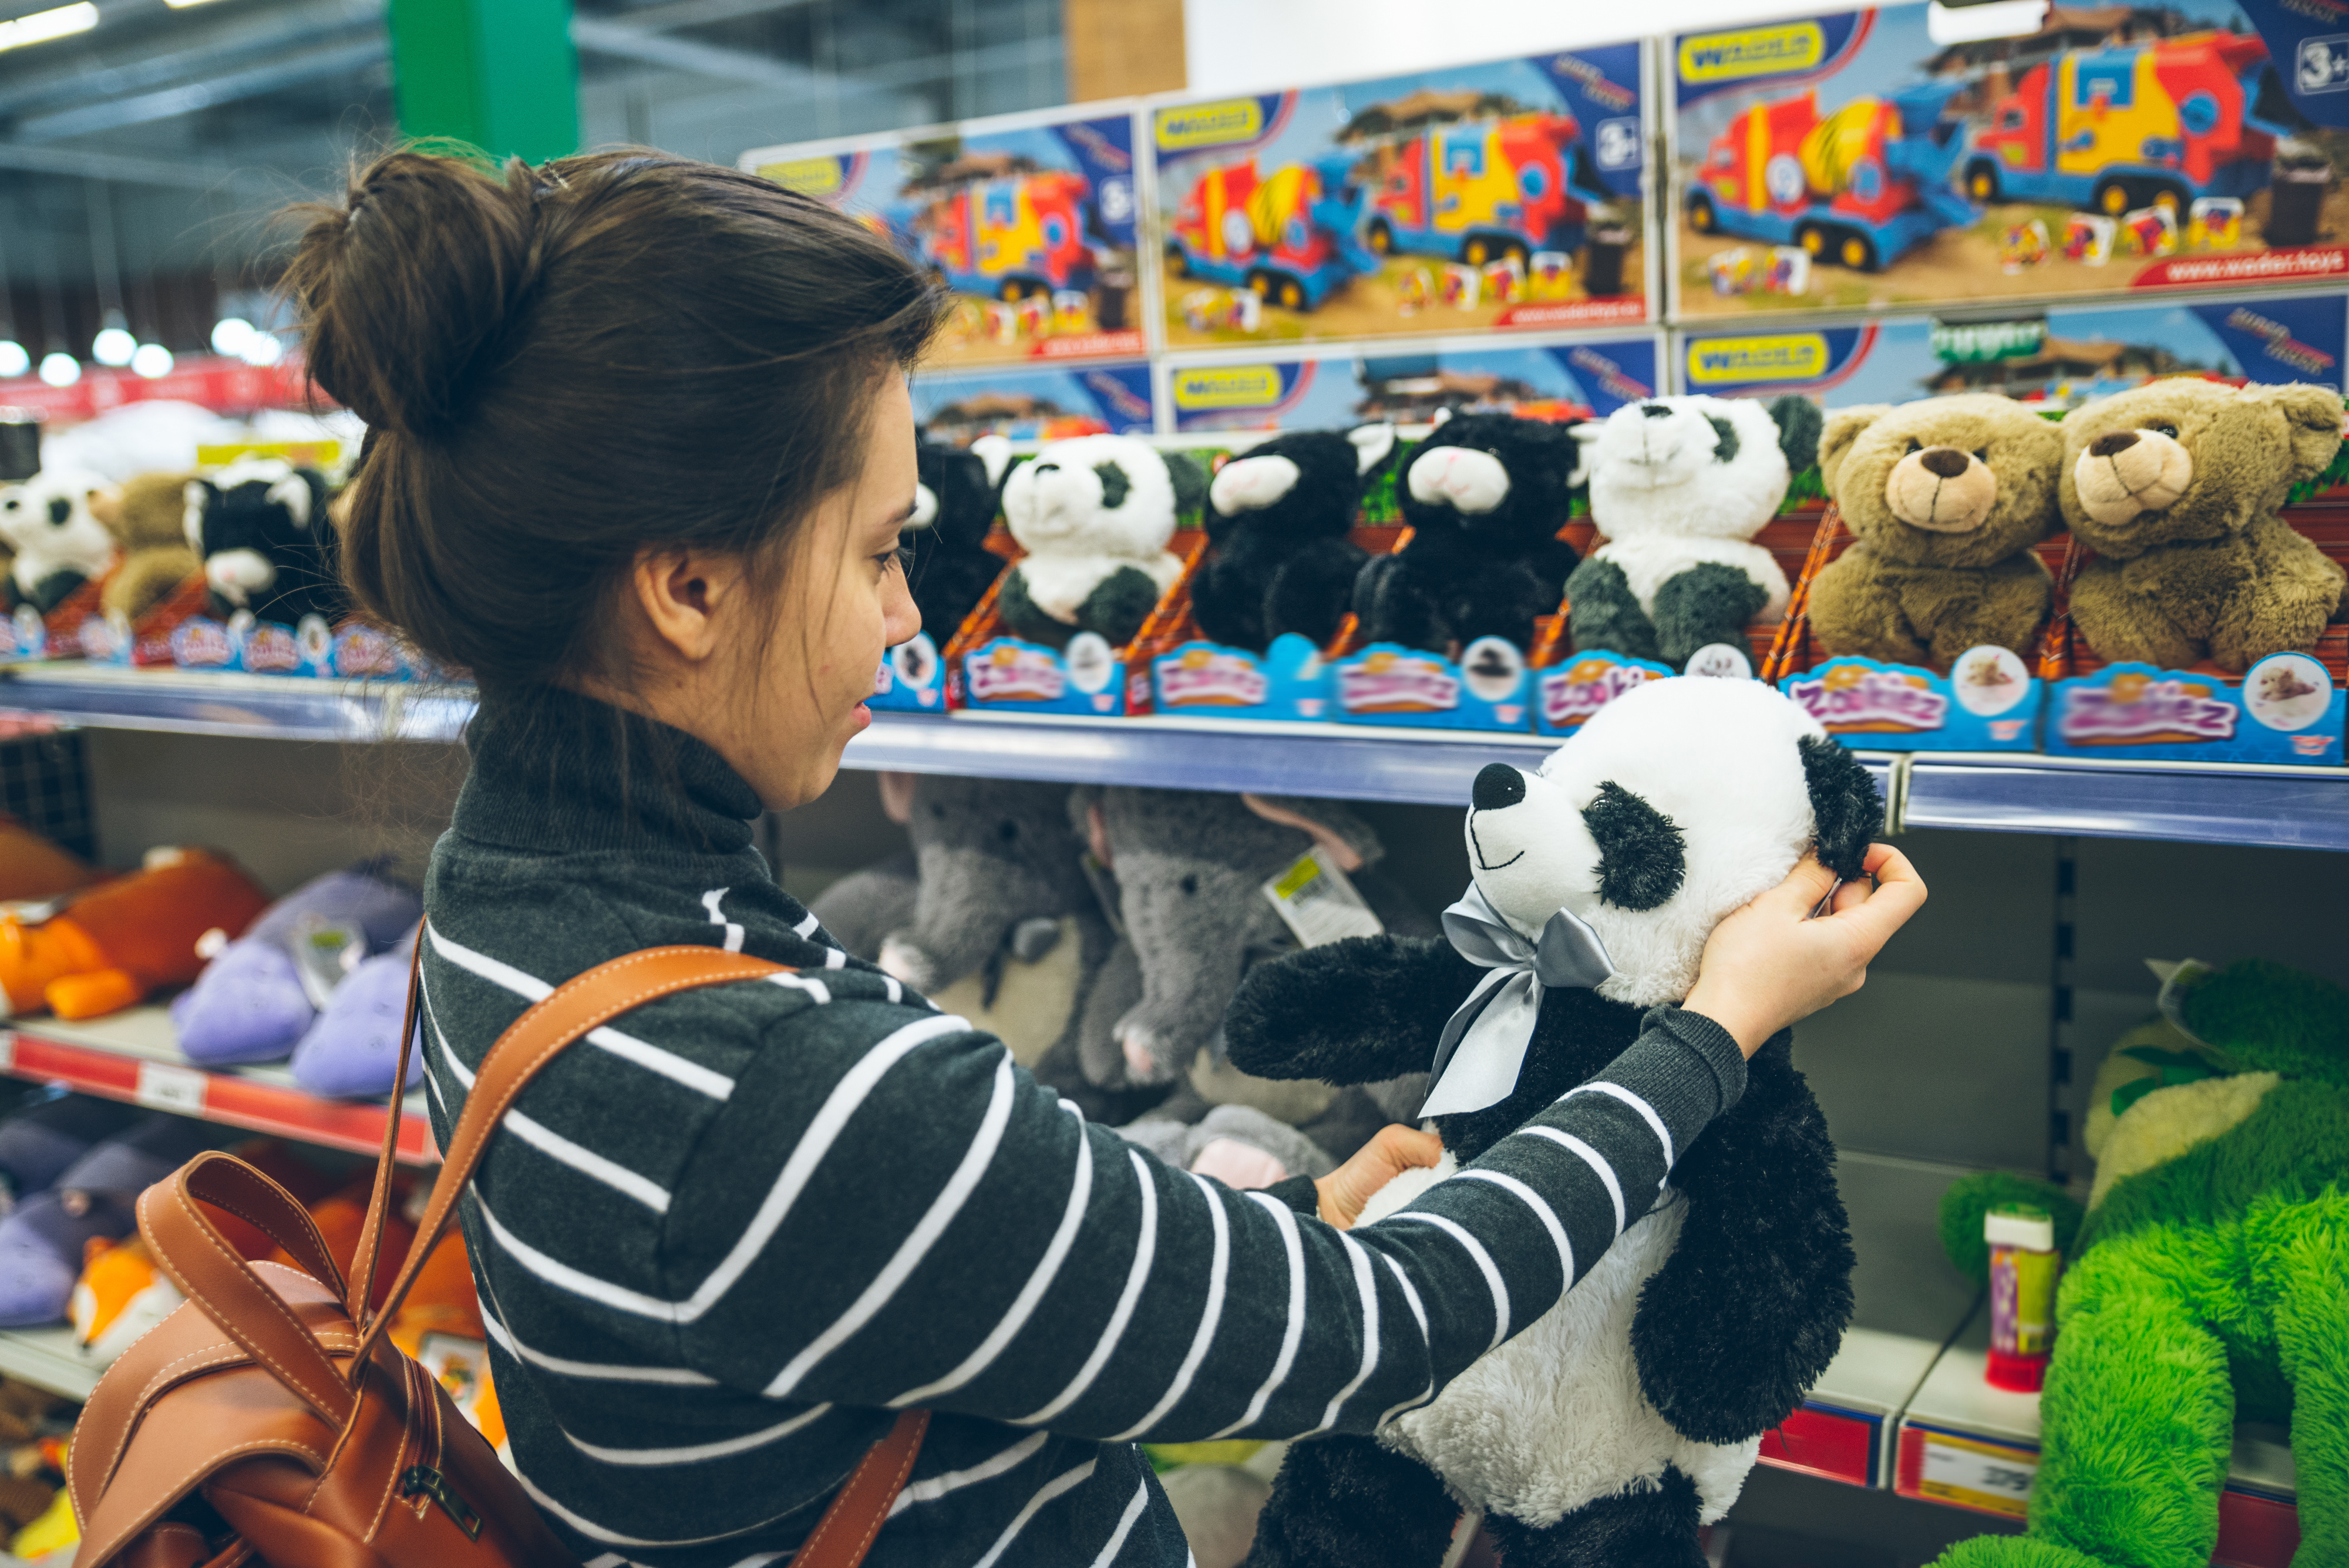 woman look for soft panda toy